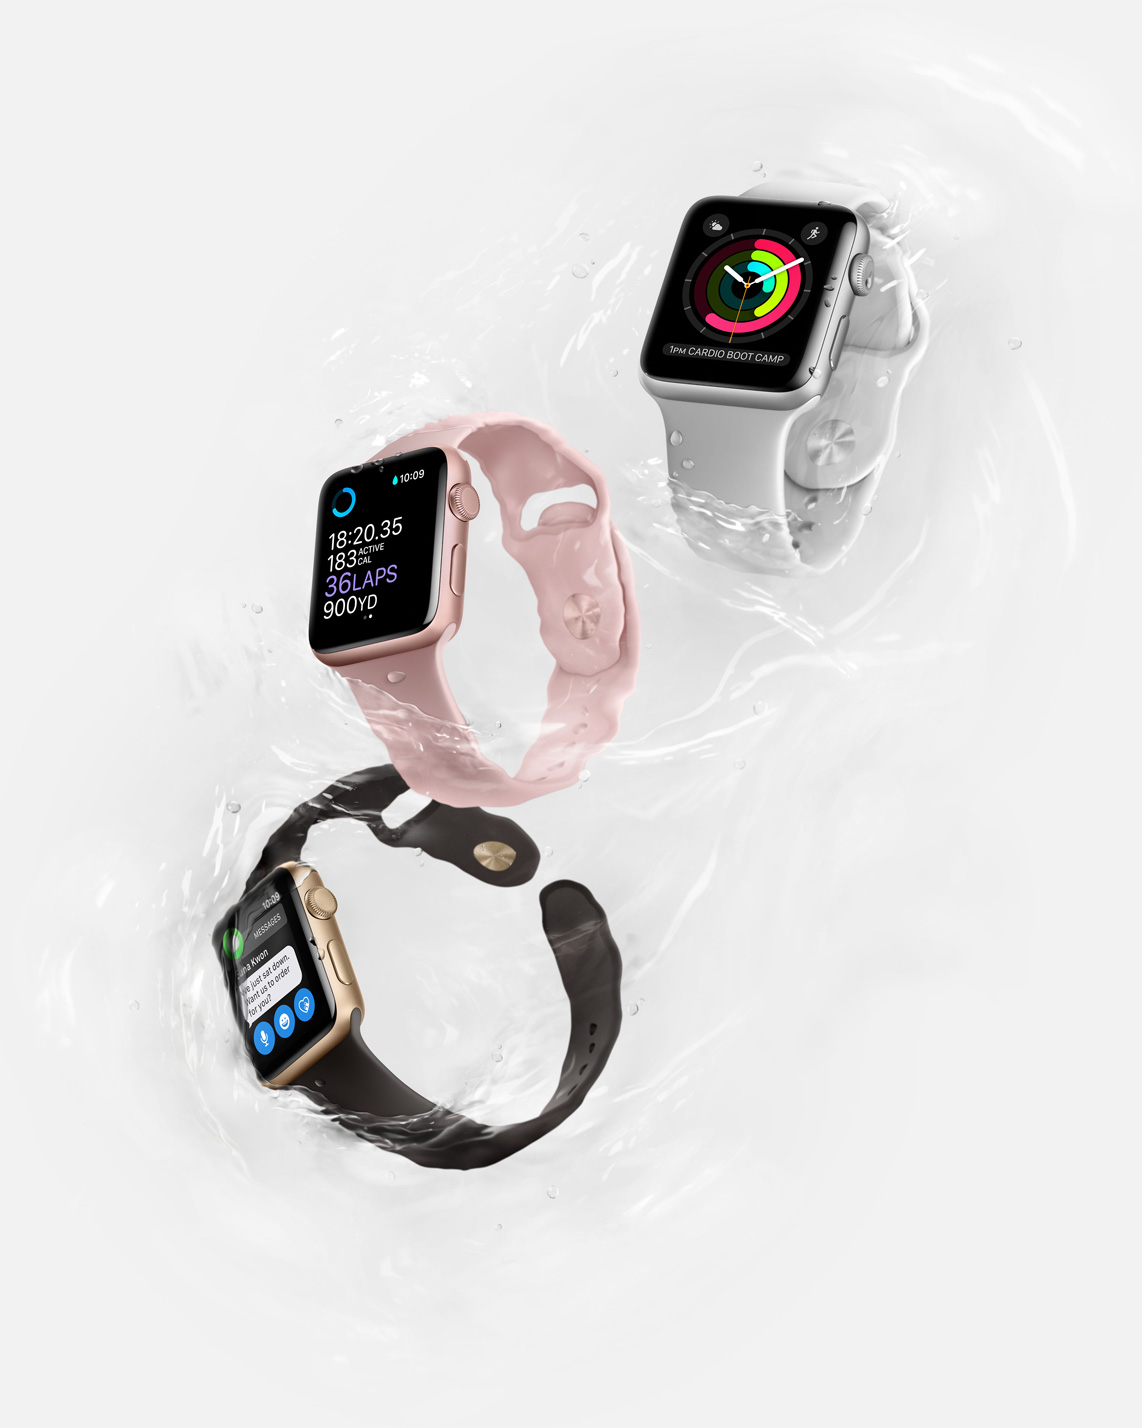 Apple Watch Series 2 Water Resistance